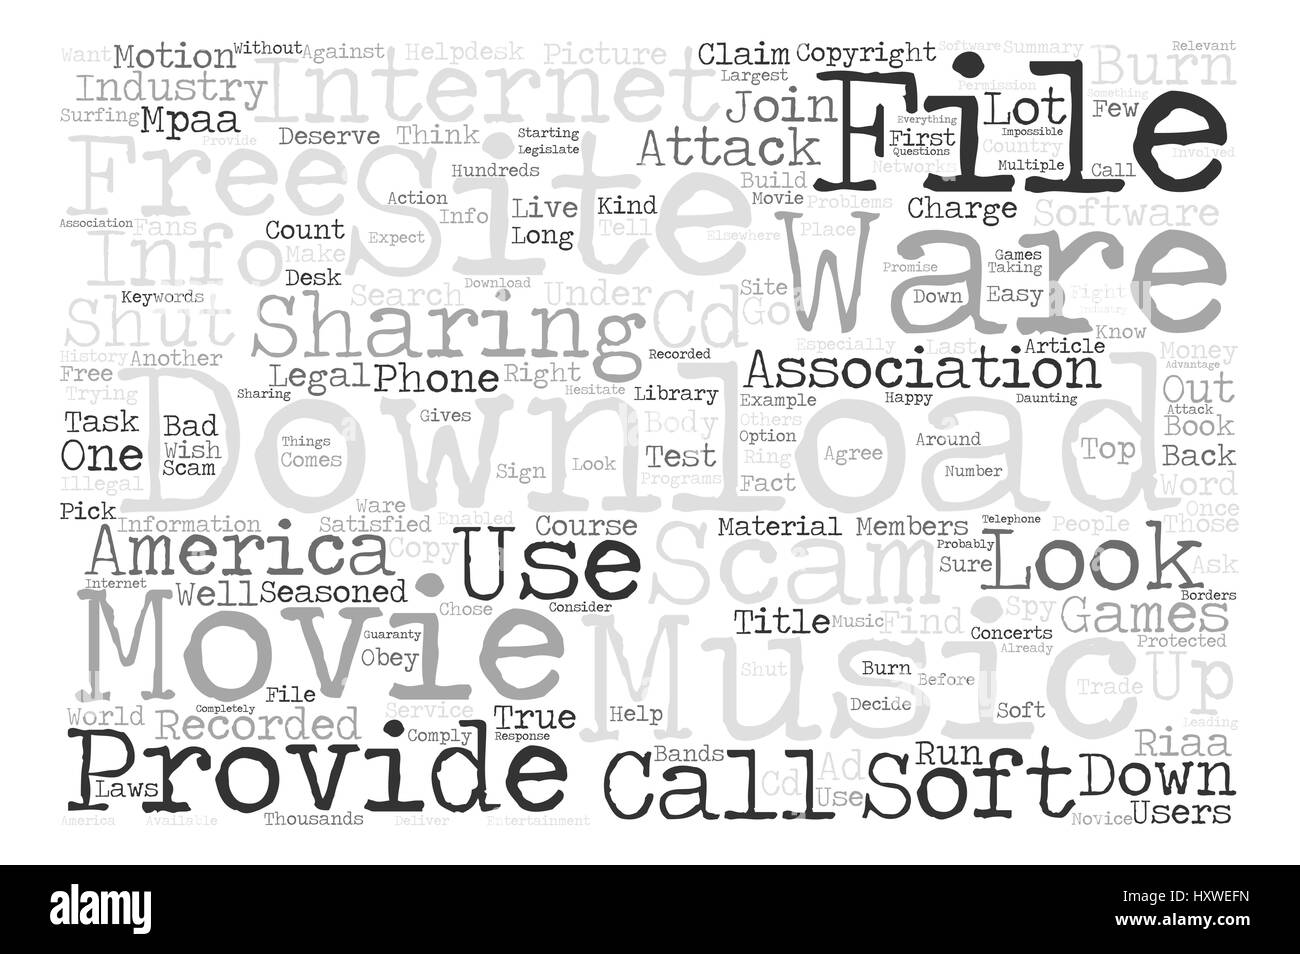 Music And Movies Download Sites Are They A Scam Word Cloud Concept